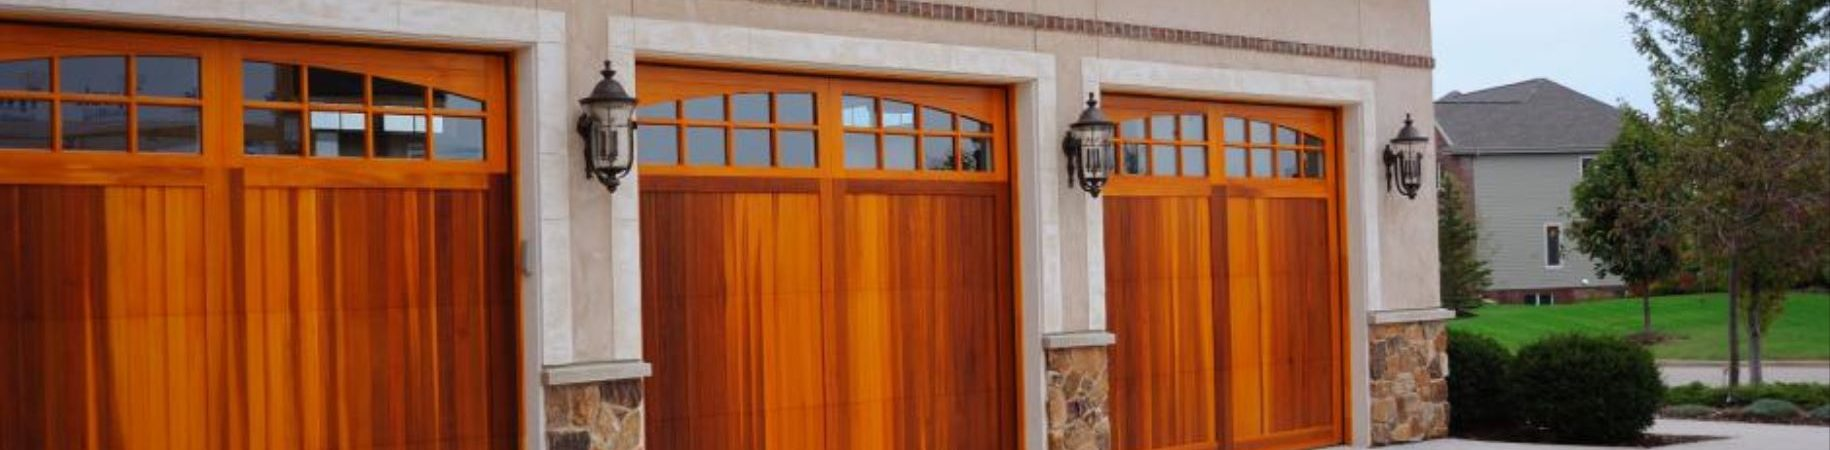 garage door repair company chicago